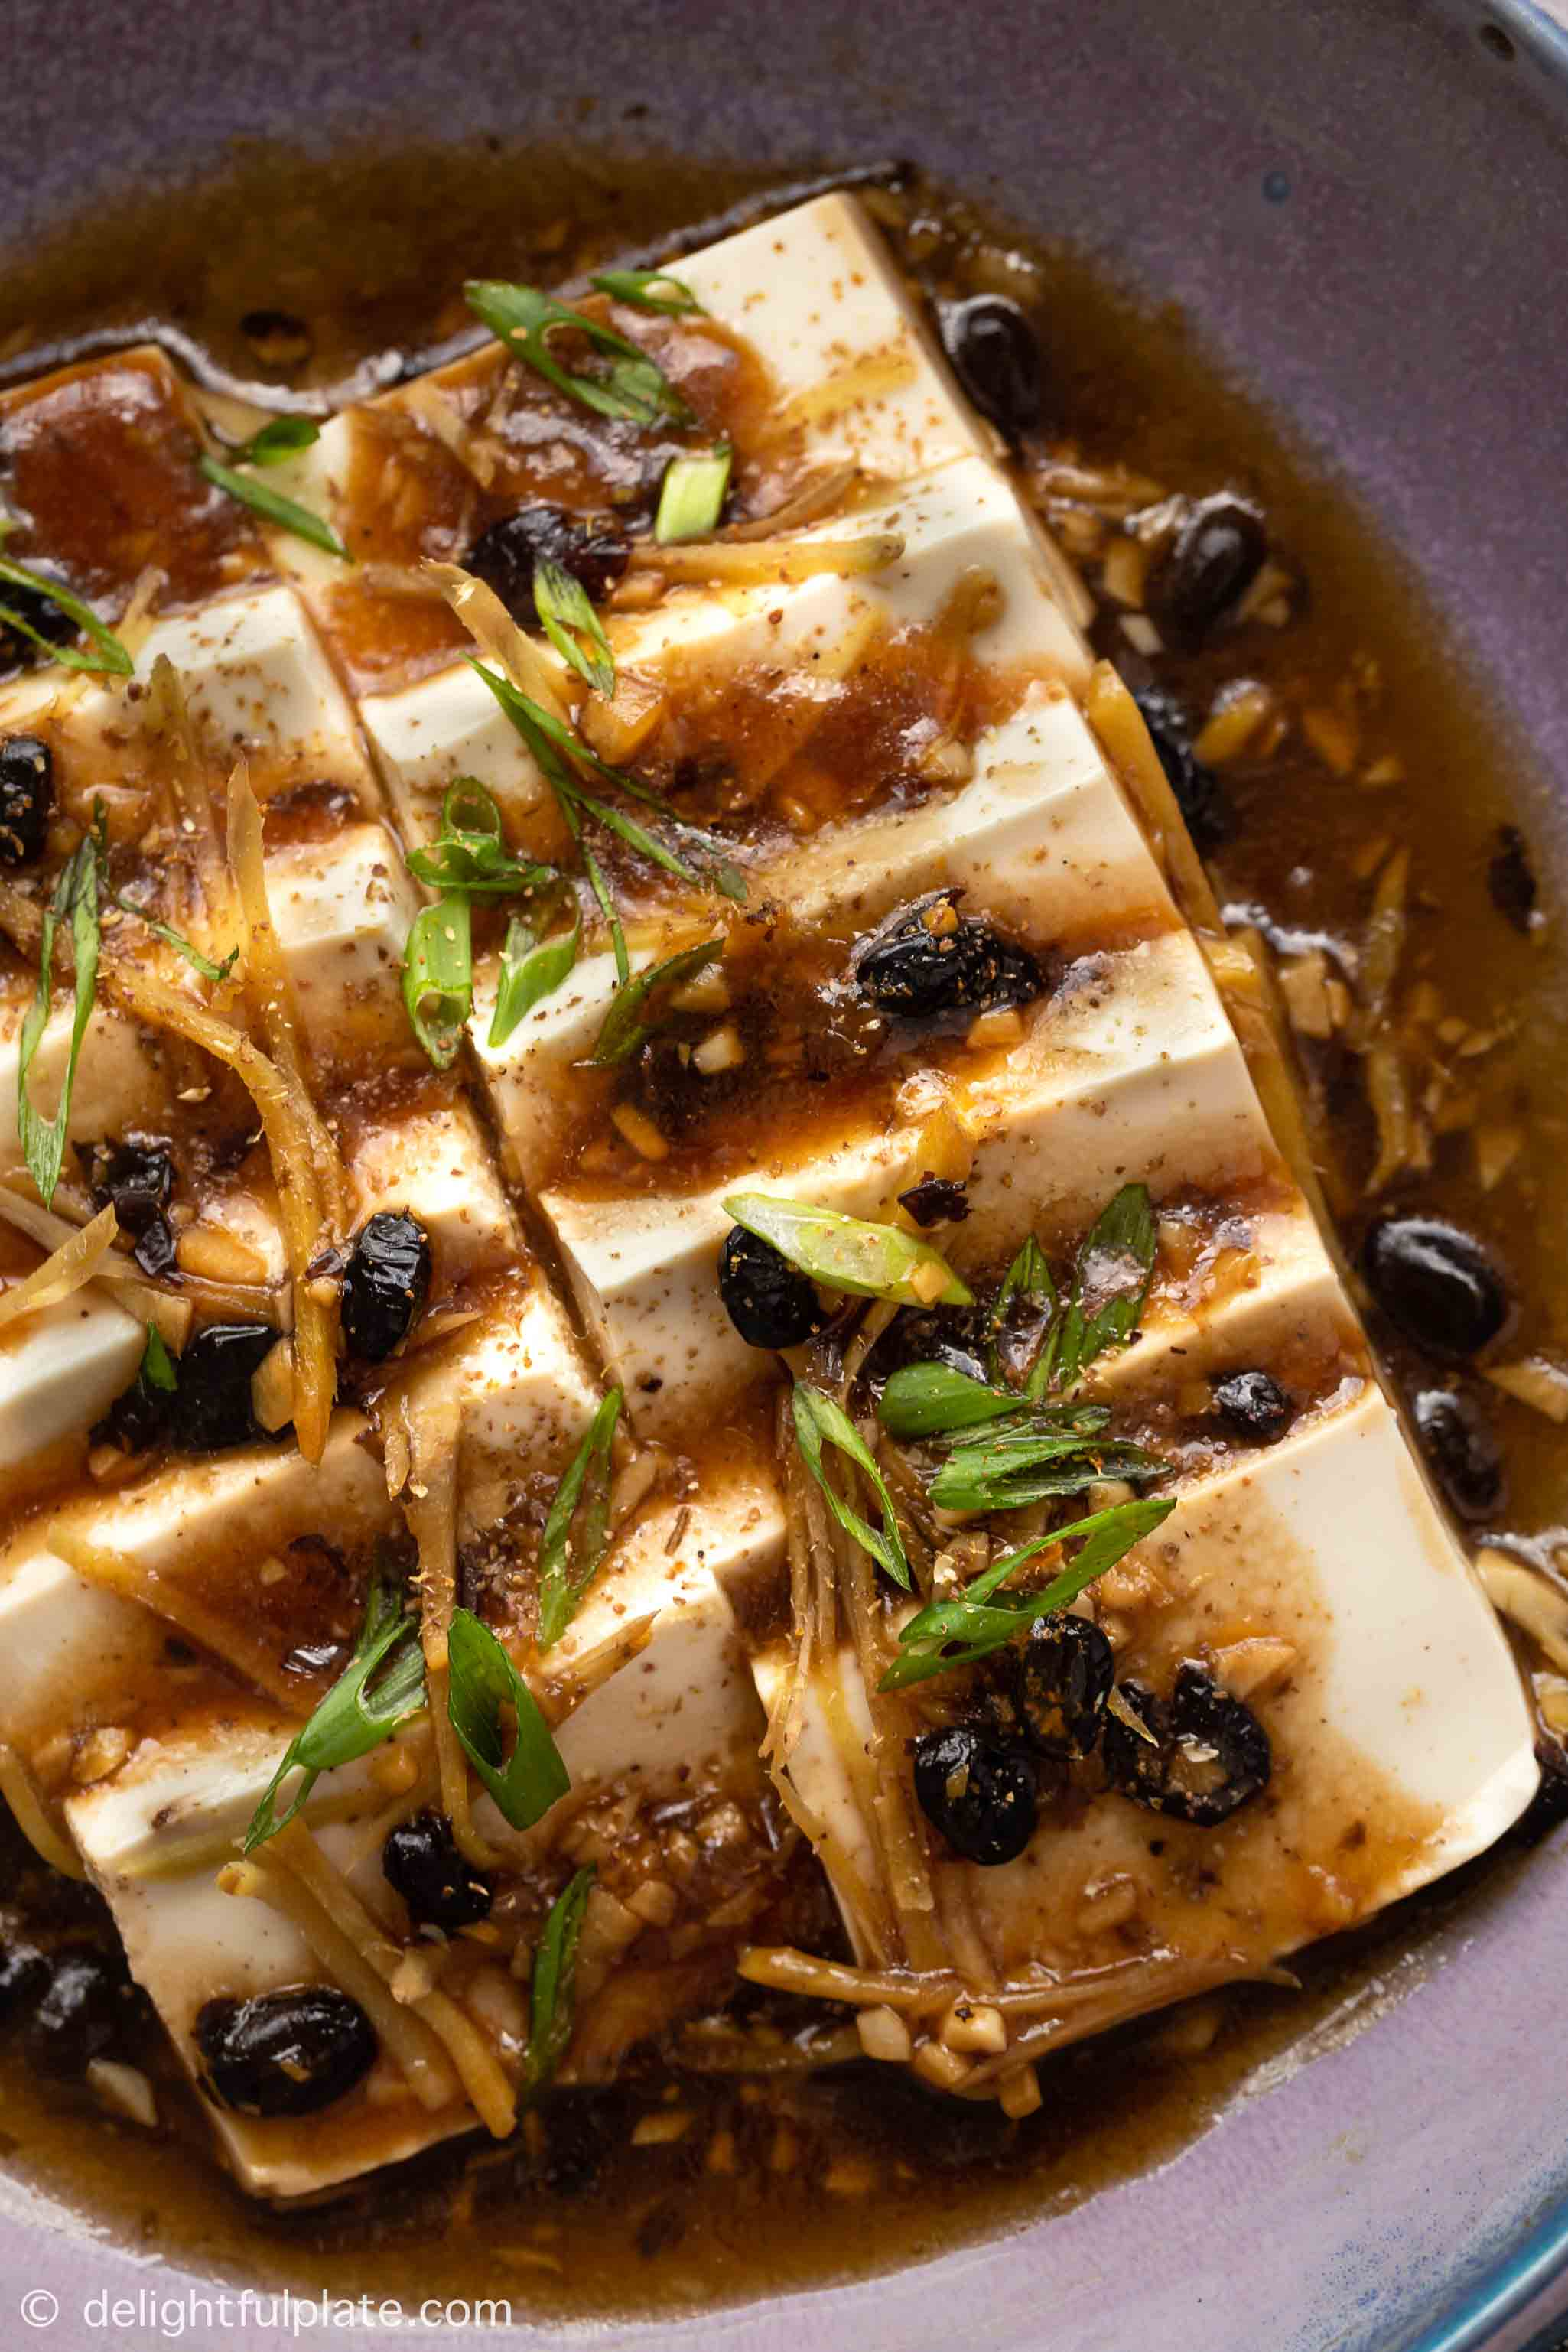 a plate of steamed silken tofu with black bean sauce